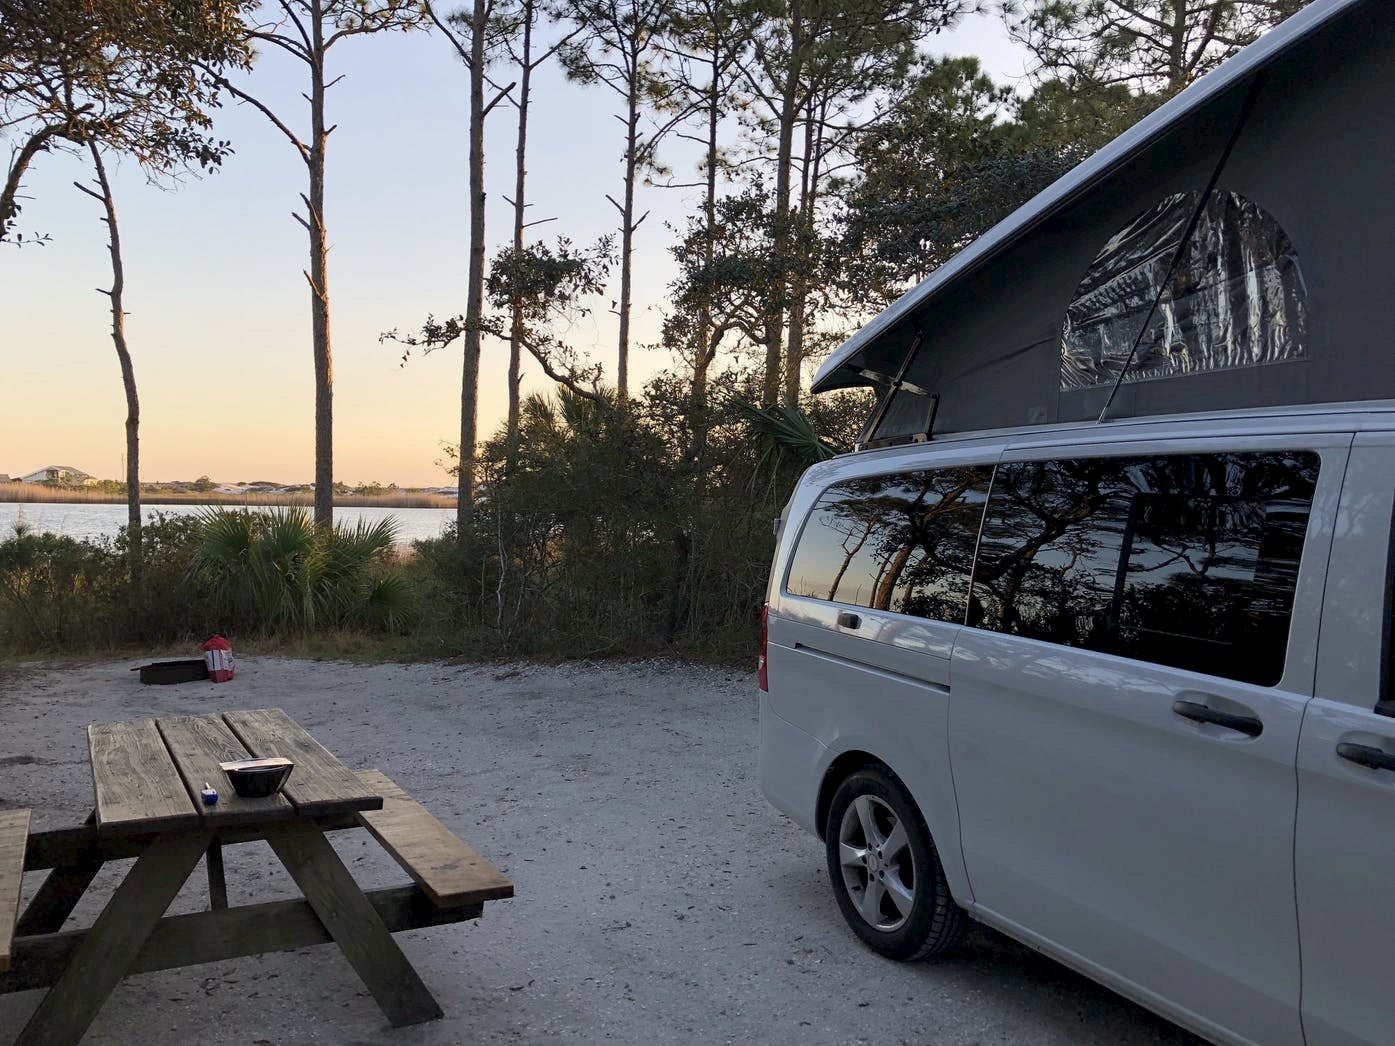 White van with pop top park beside picnic table and palm trees at coastal campsite.